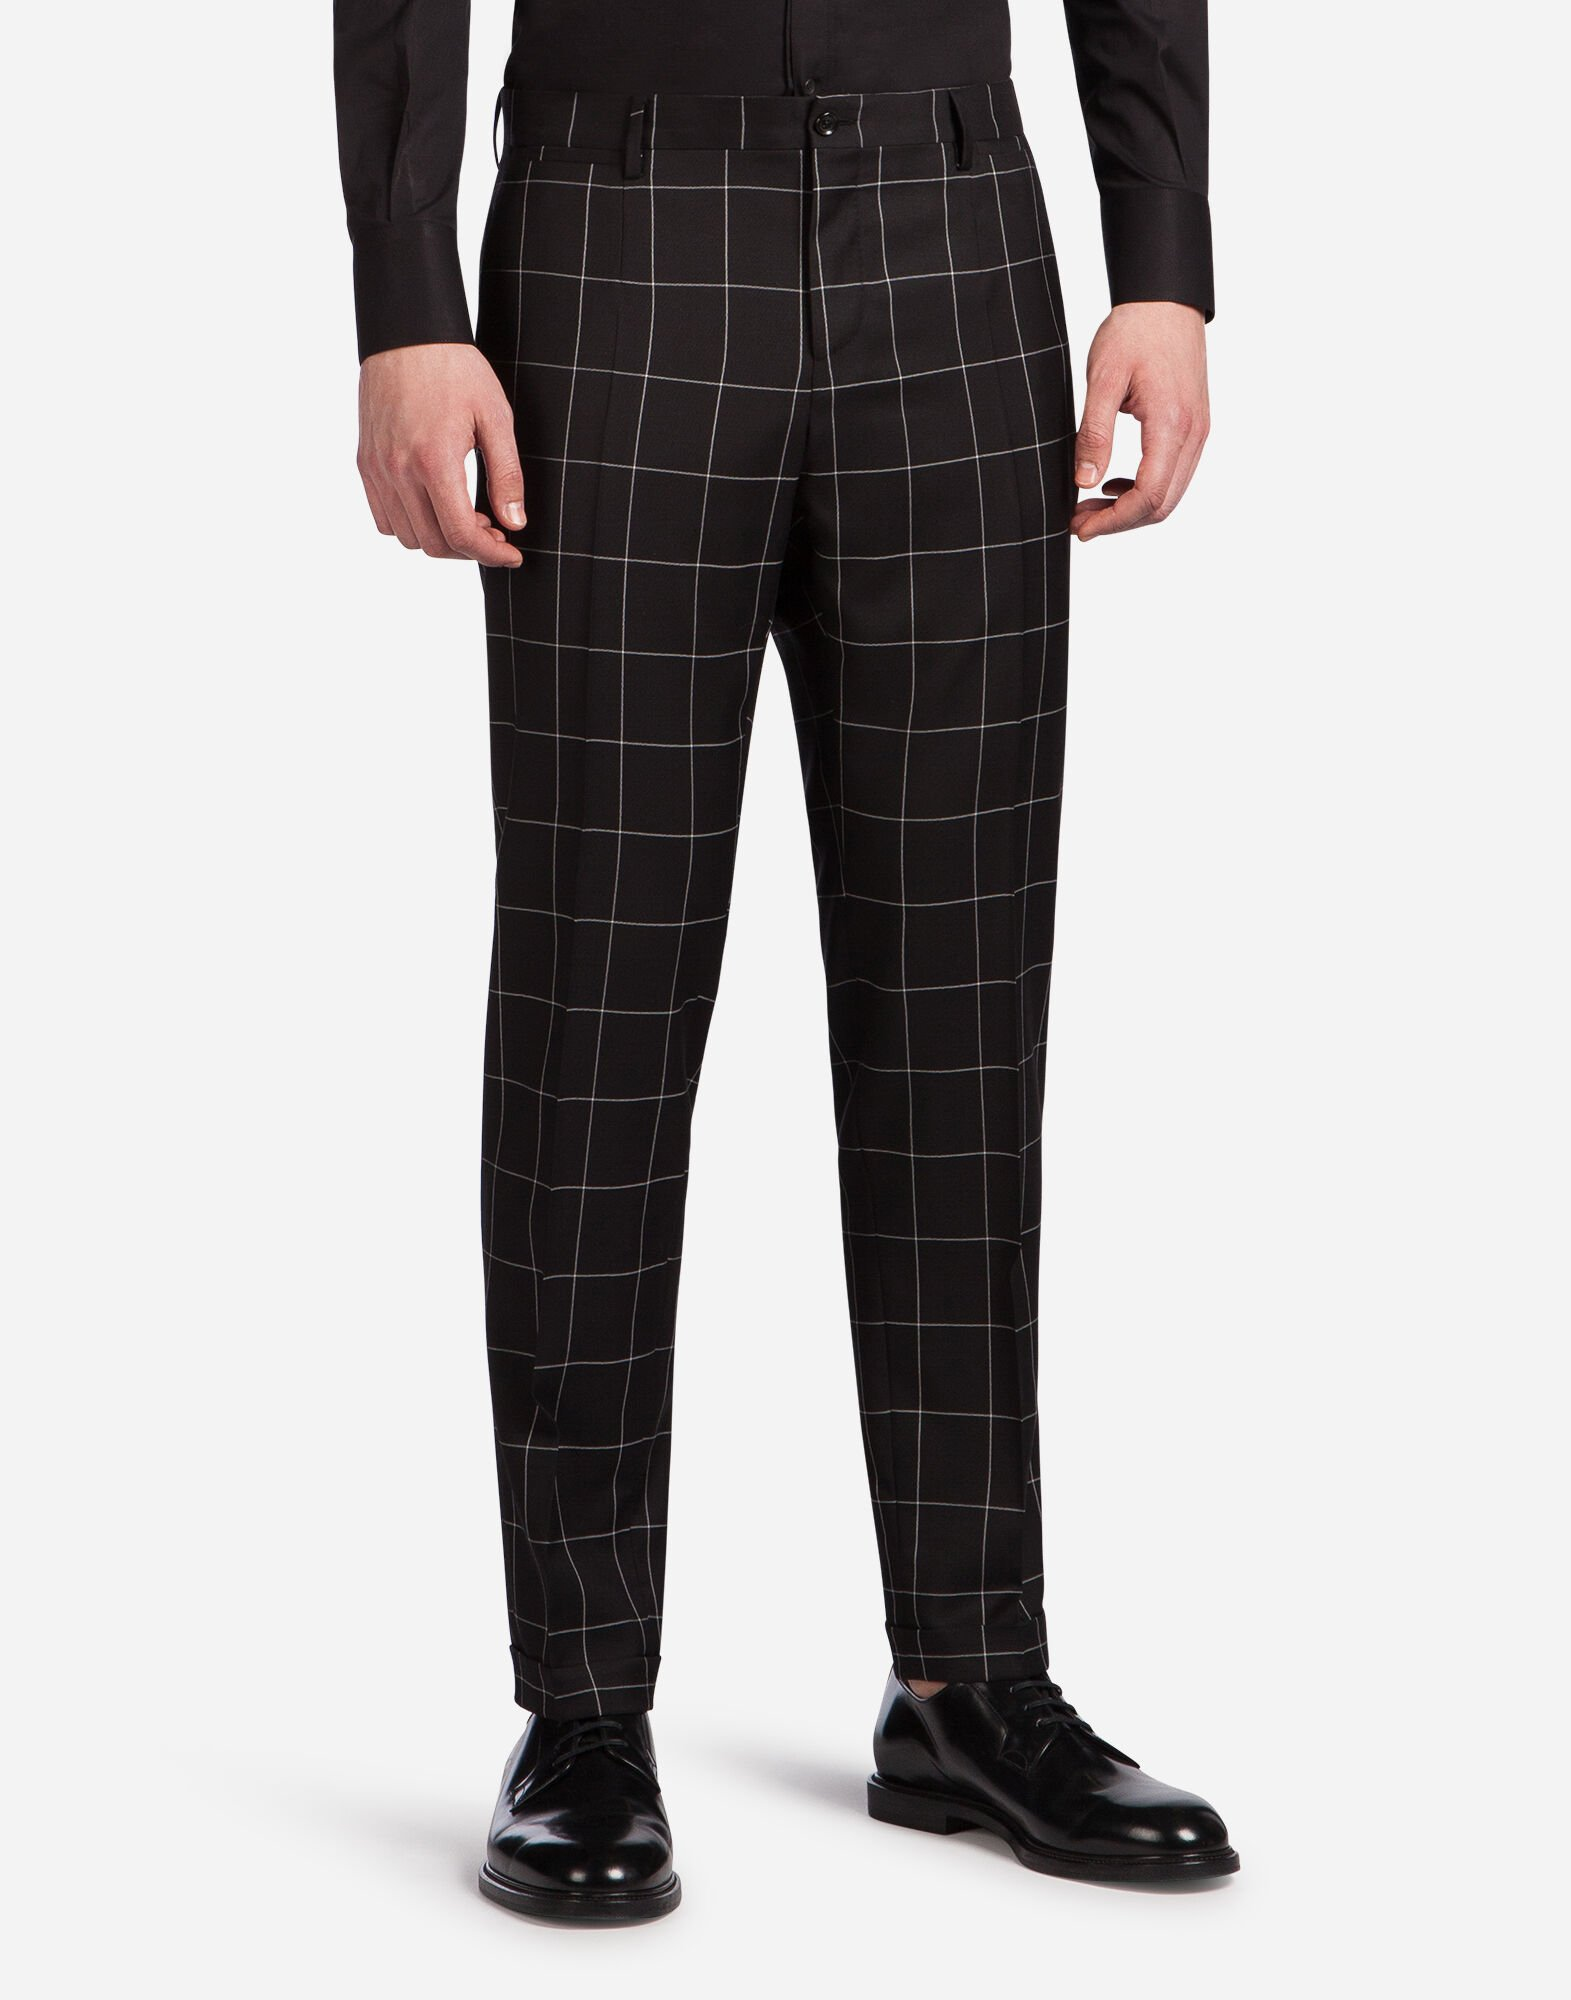 TWO PIECE SUIT IN CHECKERED WOOL